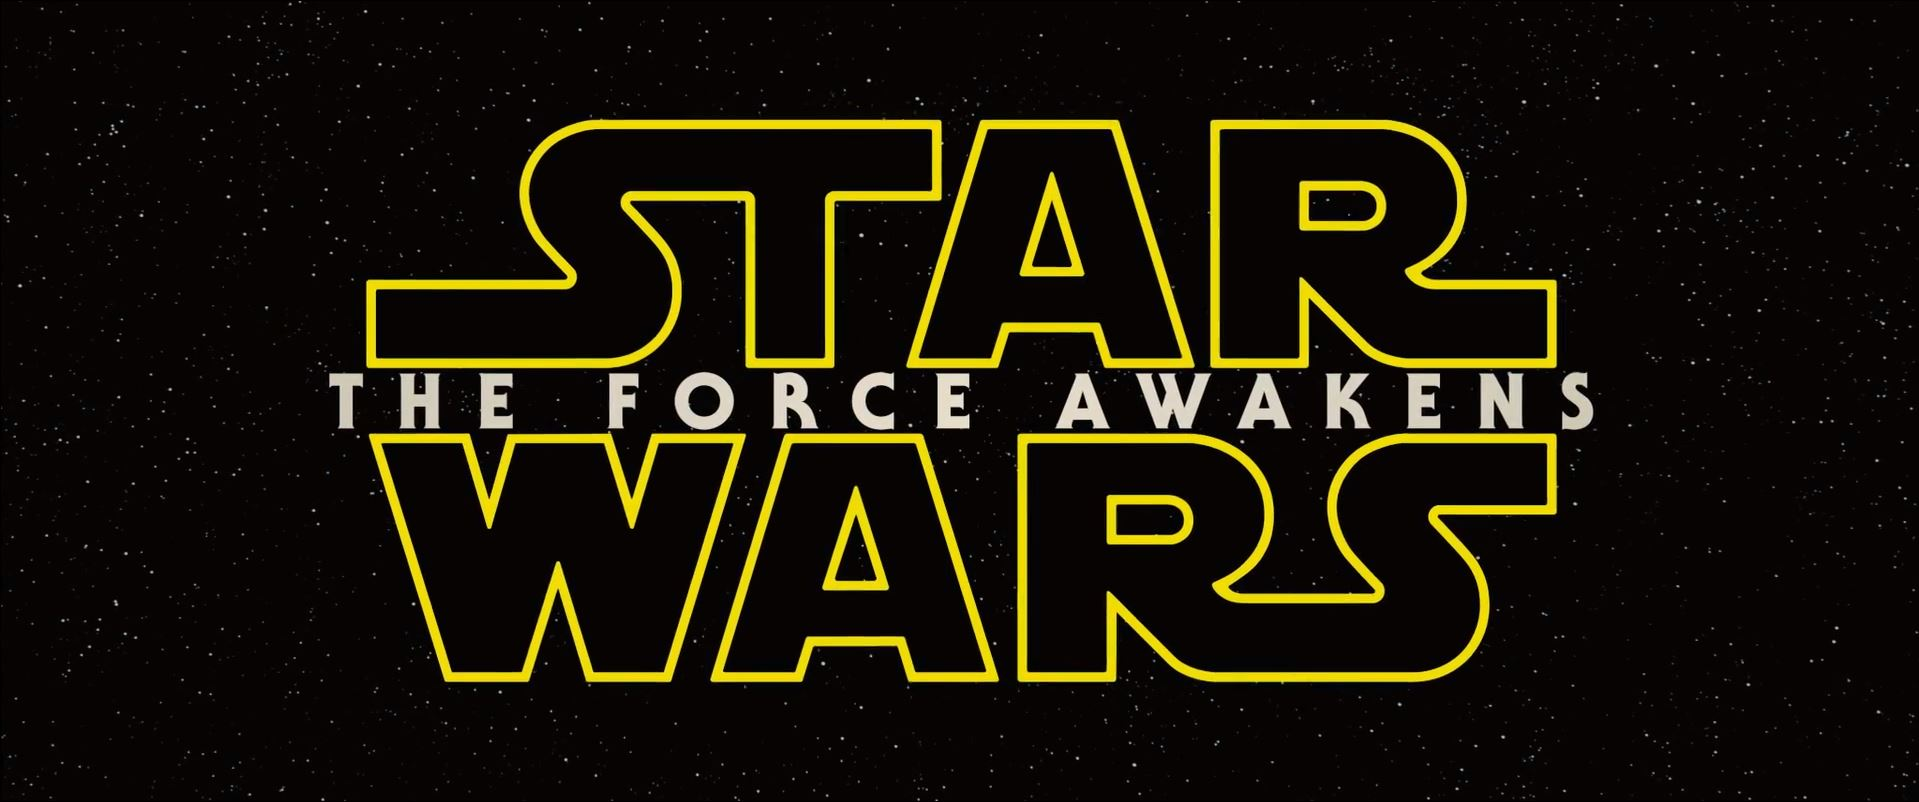 Star Wars The Force Awakens Community Fanpage